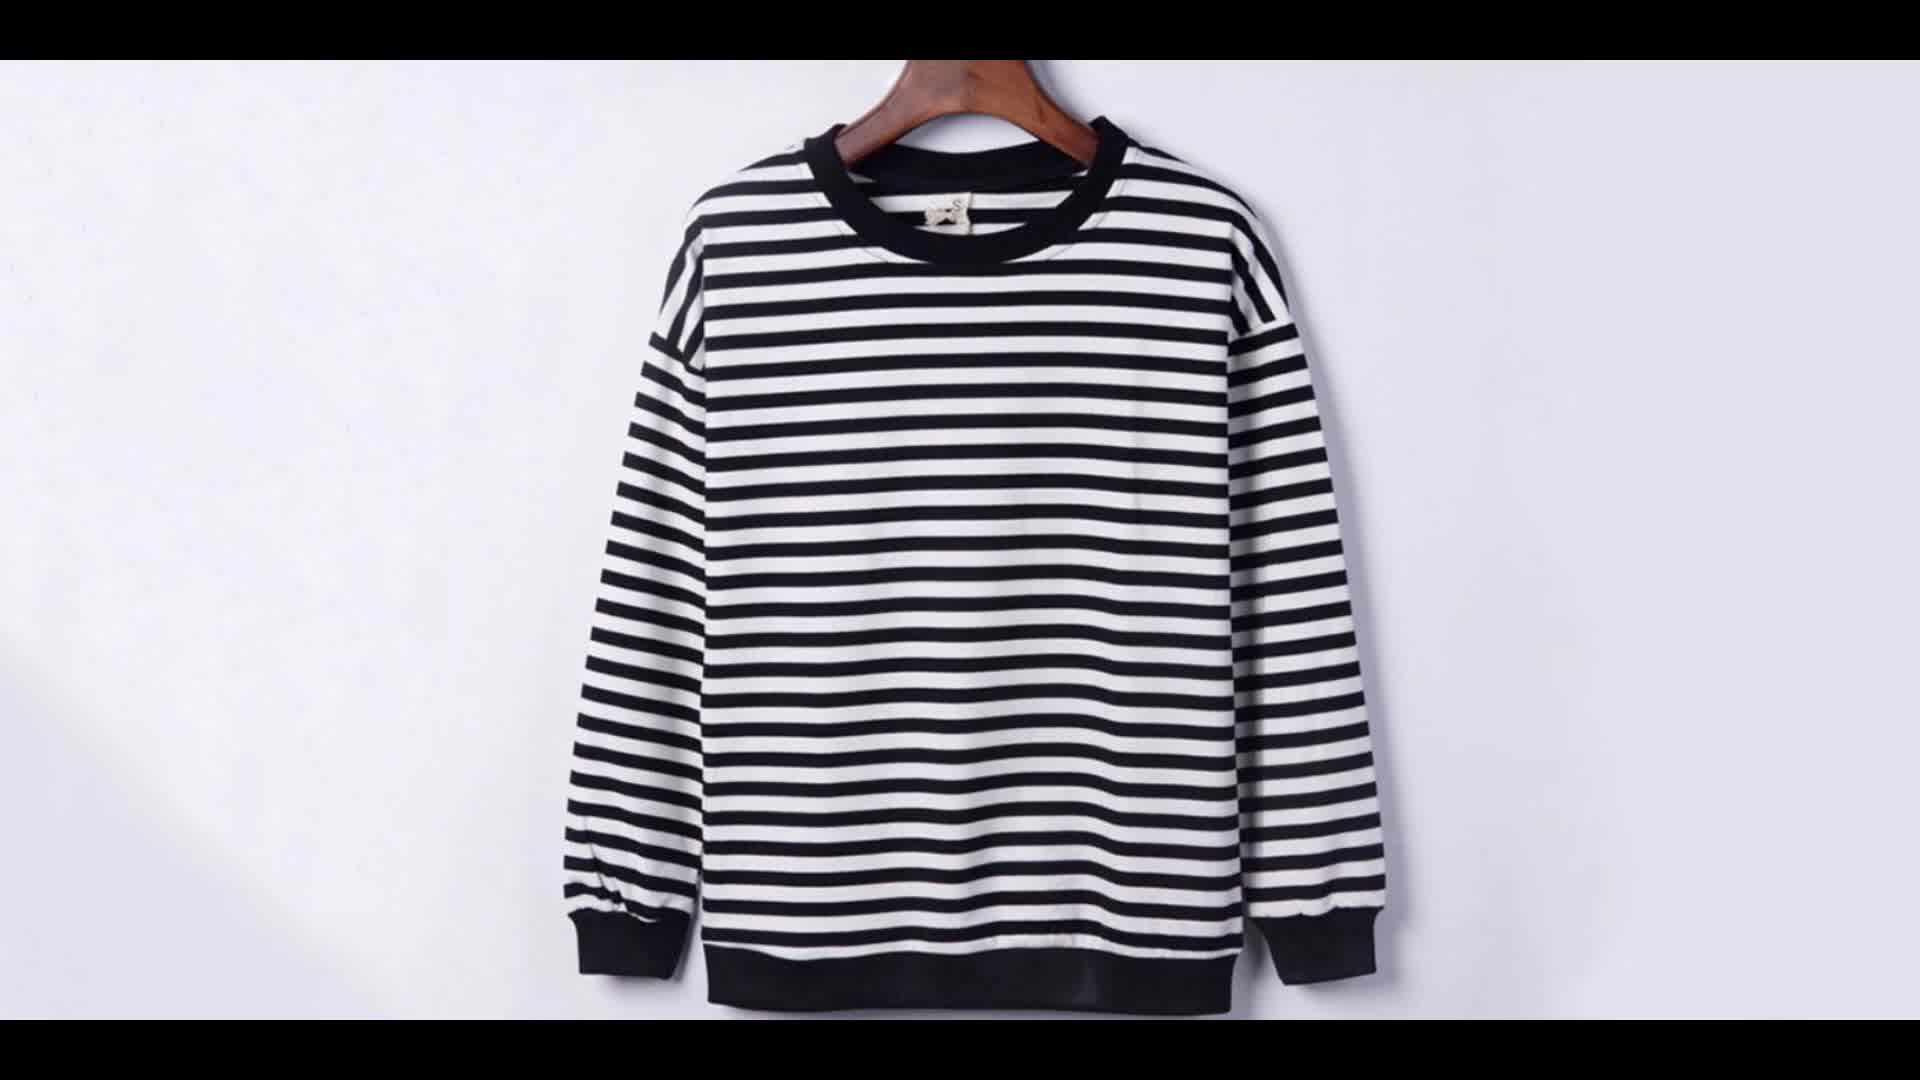 Wholesale 100 cotton men 39 s long sleeve blank striped t for Where to order blank t shirts